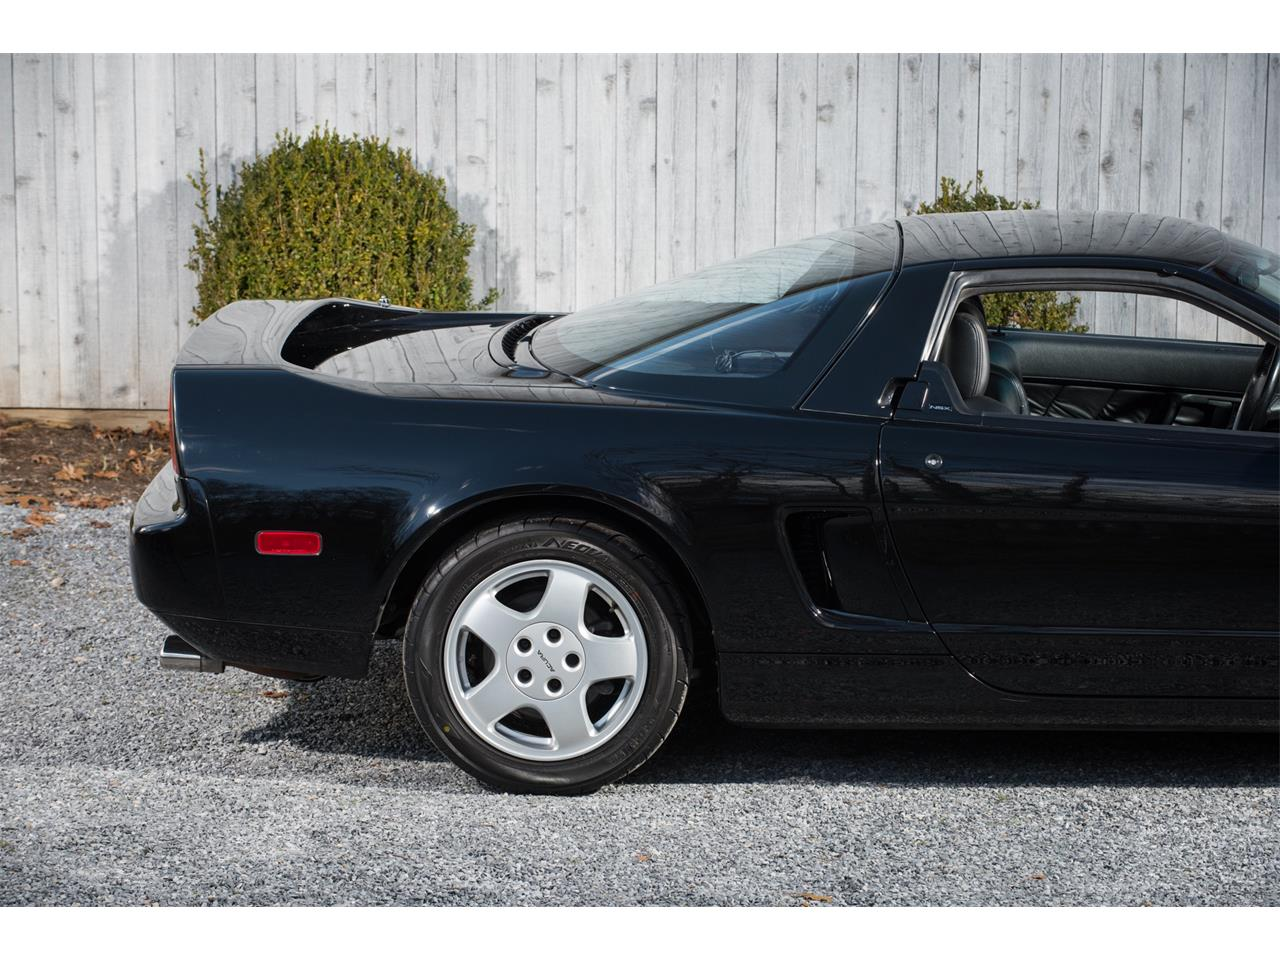 Acura Of Valley Stream >> 1991 Acura NSX 5-SPEED MANUAL for Sale   ClassicCars.com ...